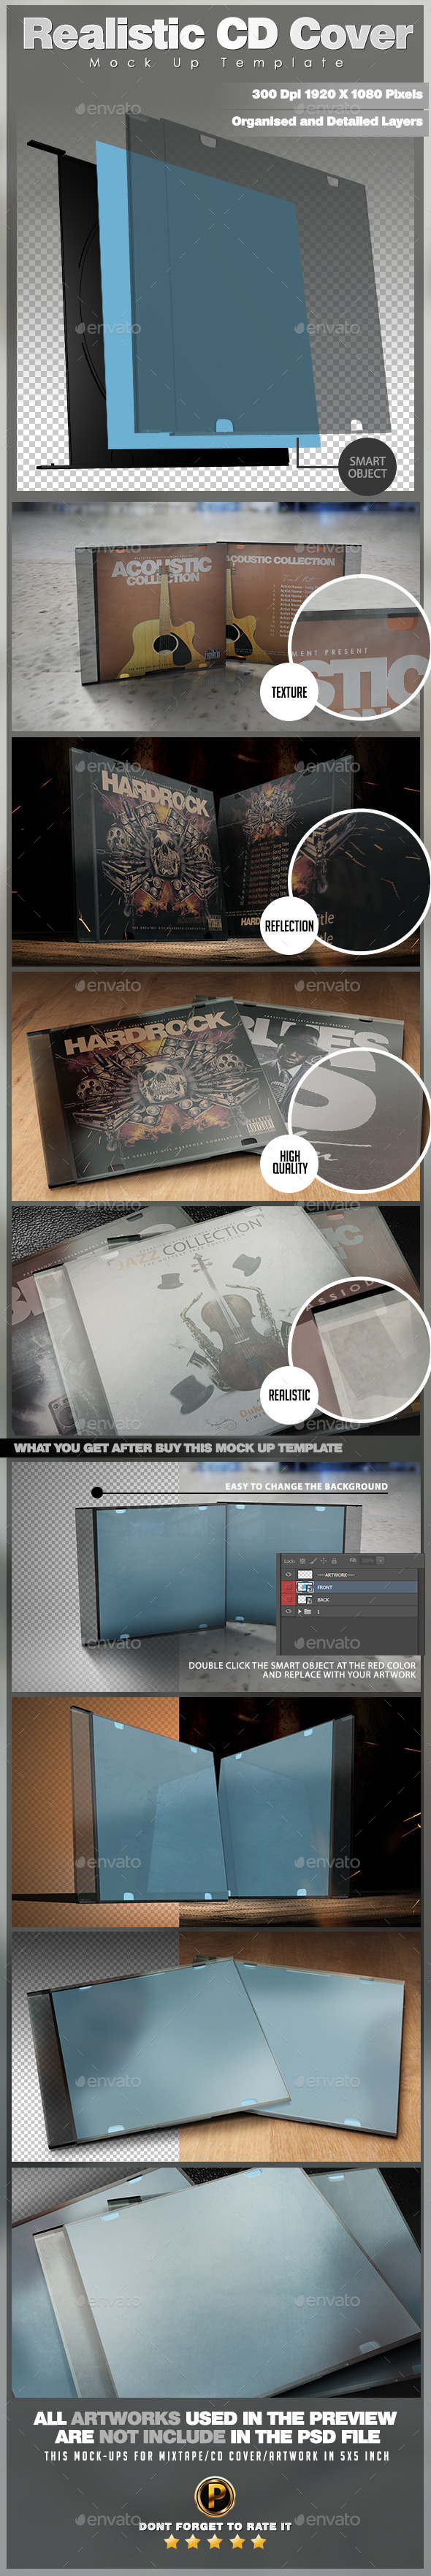 Realistic CD Cover Mock Up Template - Product Mock-Ups Graphics